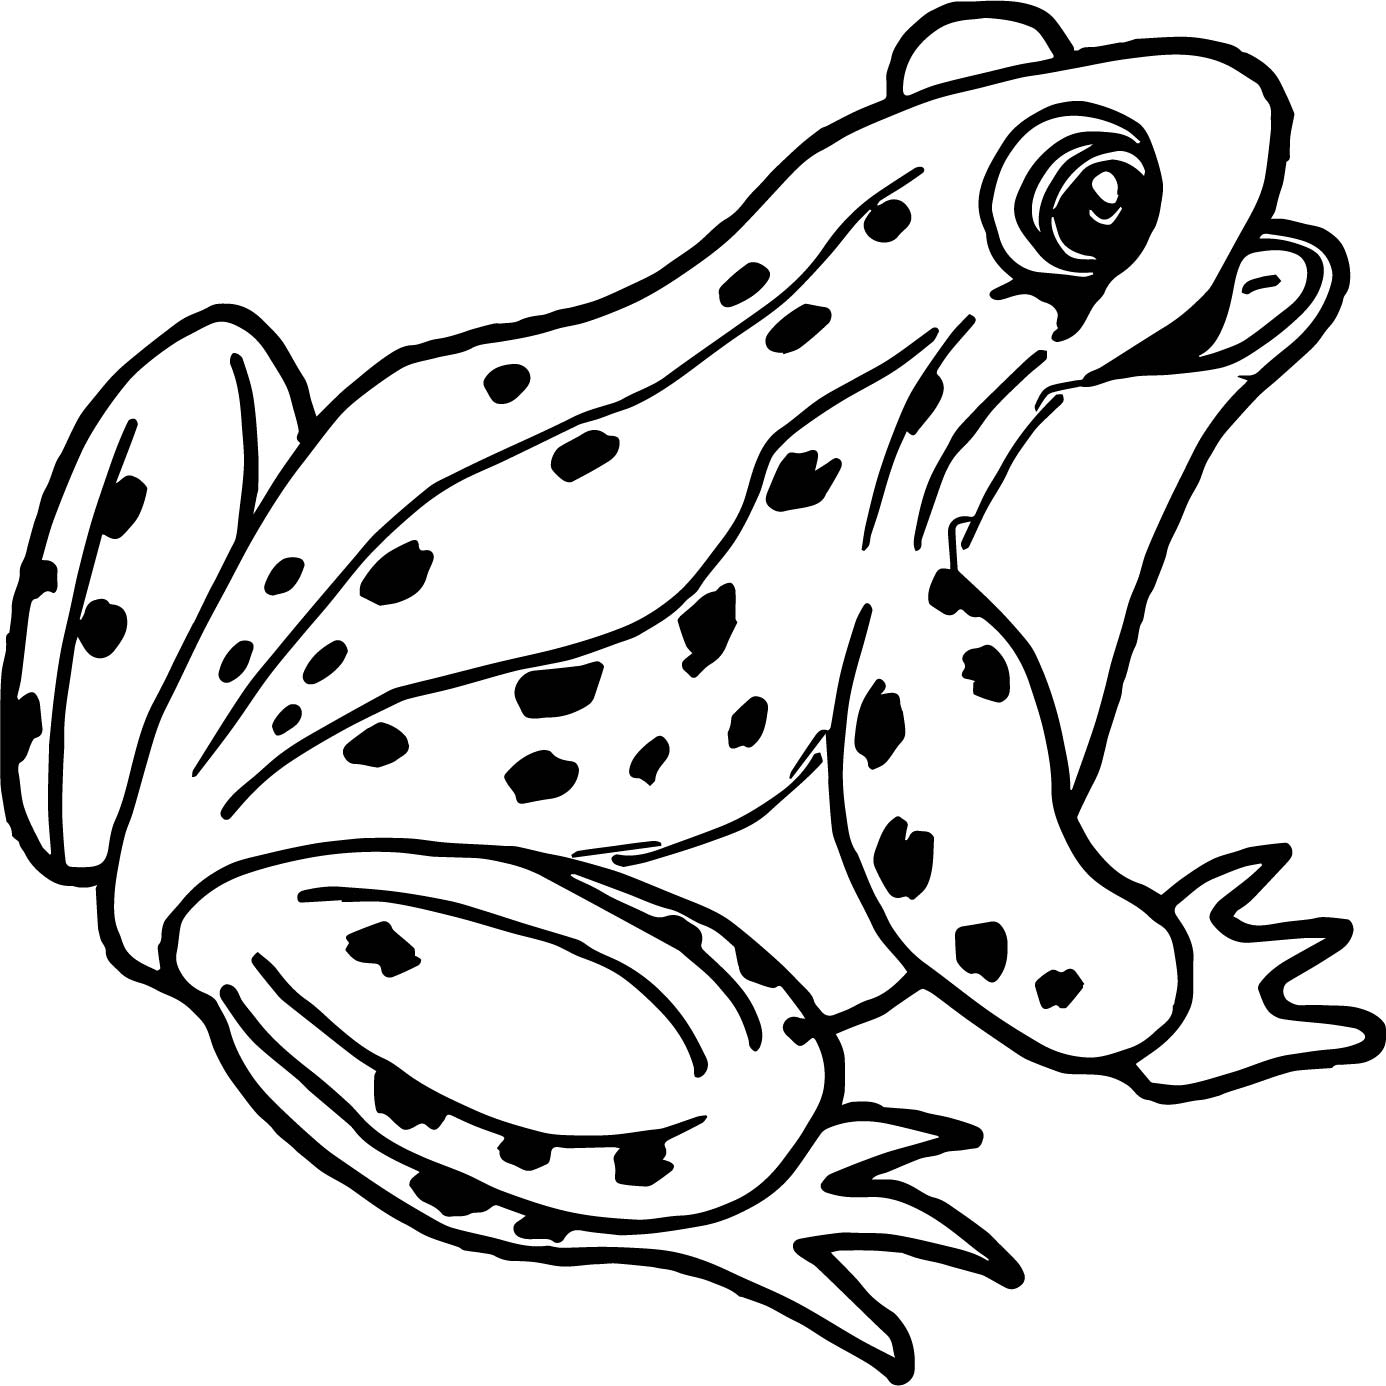 frogs to color for free frog clipart coloring pages and other free printable color free frogs for to